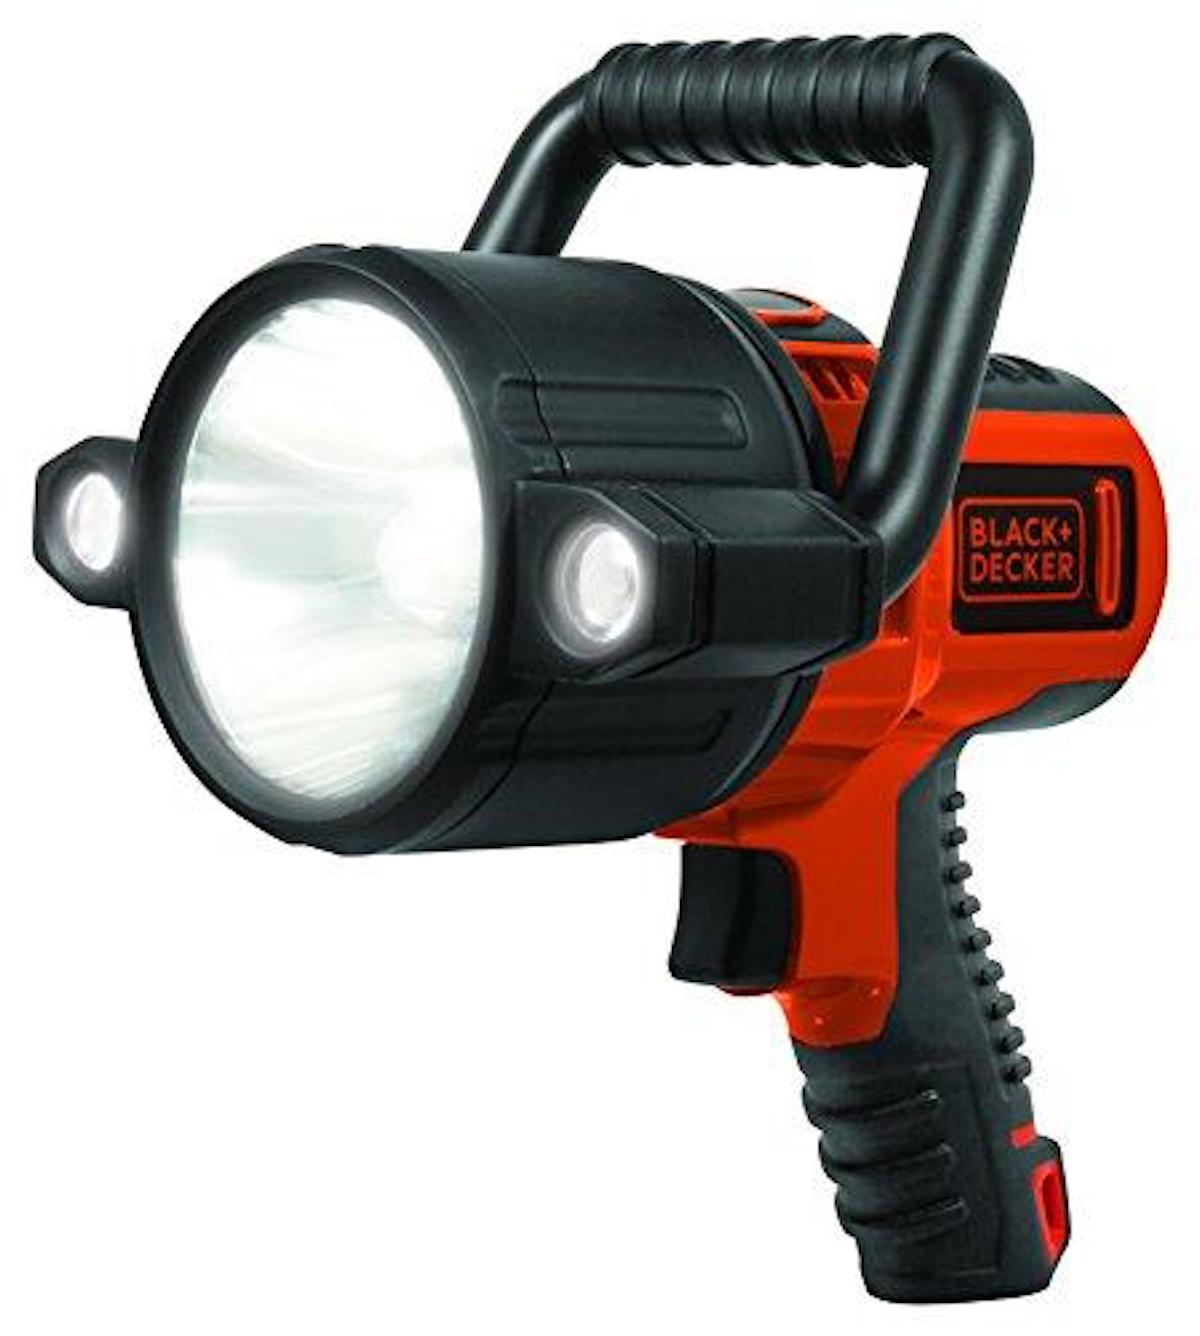 BLACK+DECKER SLV2B 10W LED Lithium Ion Rechargeable Spotlight - Don't get stuck out in the fields at night without this rechargeable spotlight. It delivers up to 750 lumens, has a run-time of about 7 hrs, and a rugged pistol grip for comfort. $39.88